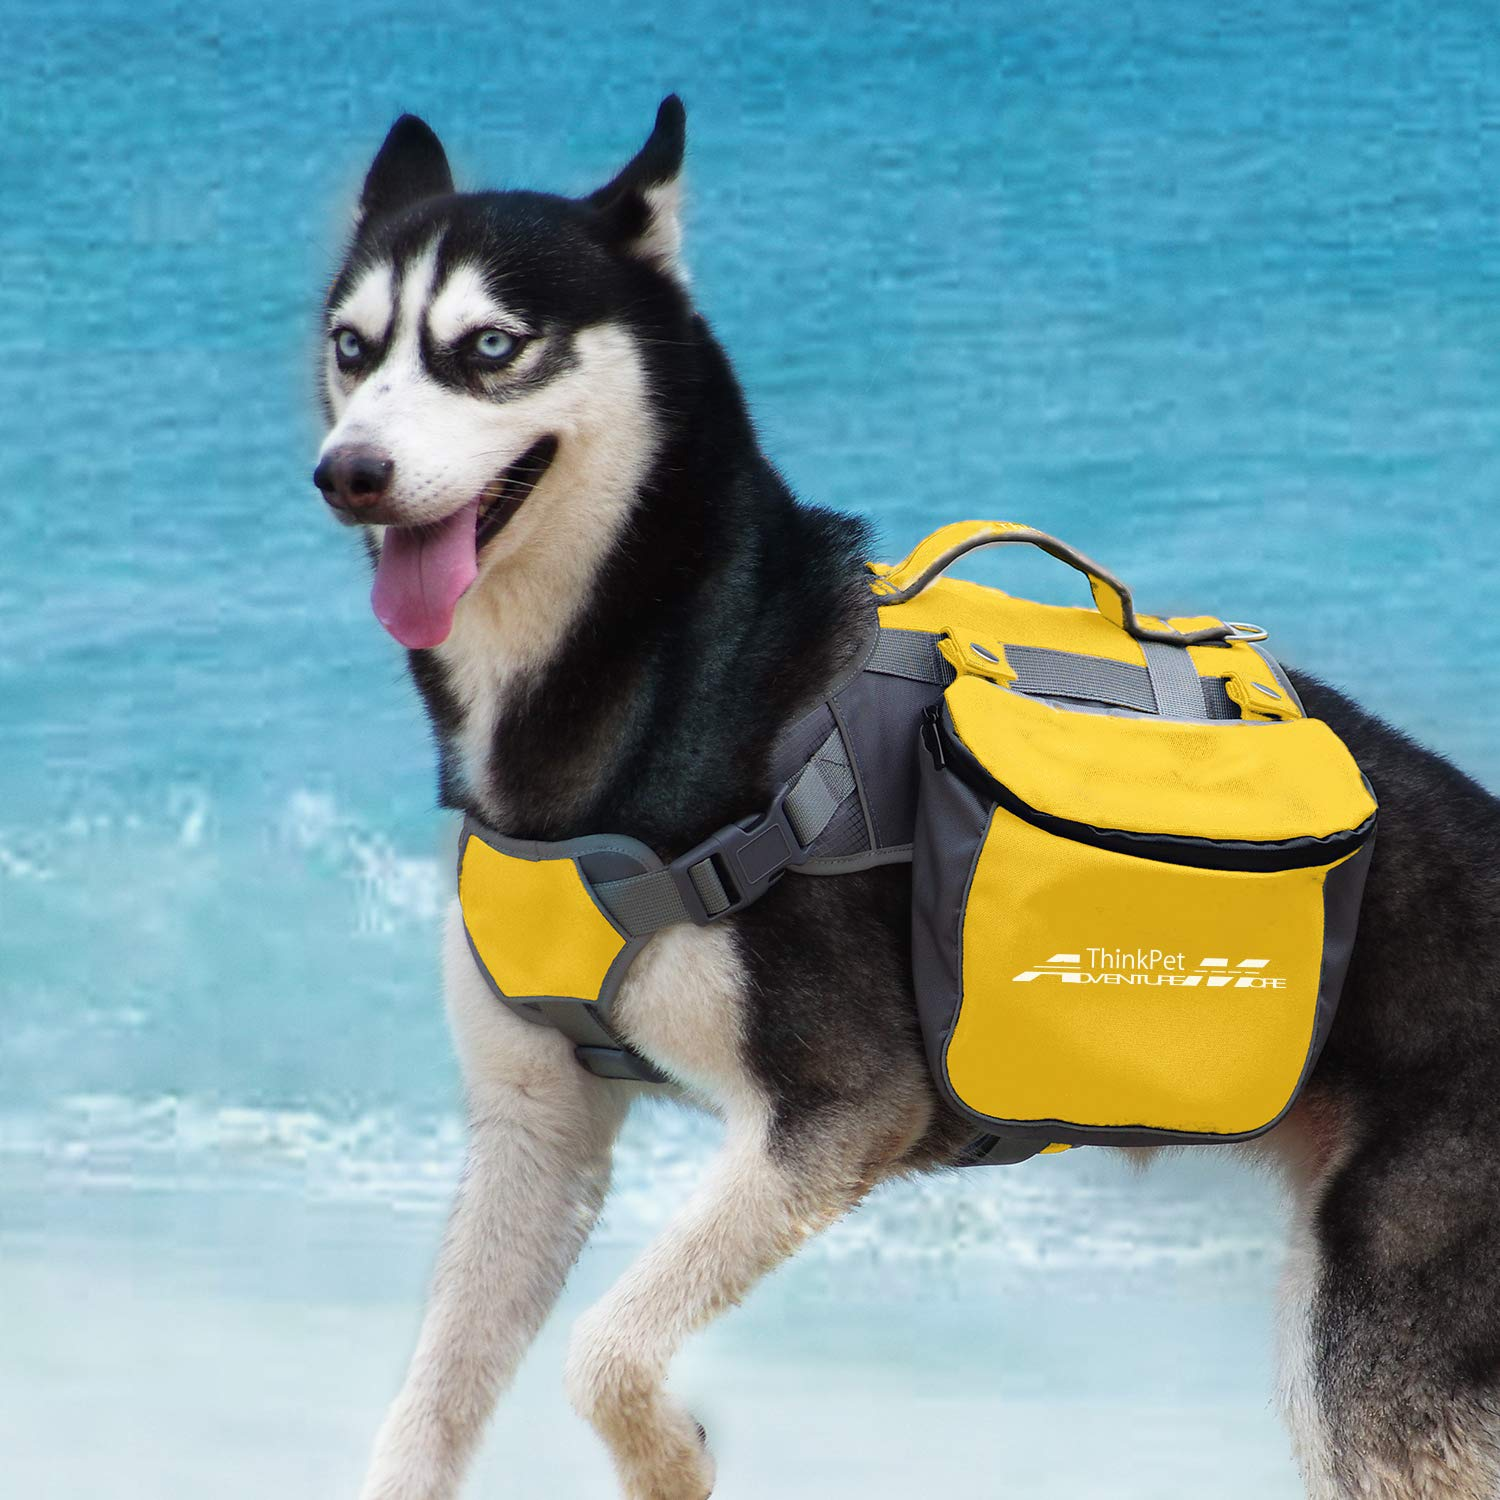 ThinkPet Outdoor Dog Backpack Reflective Saddle Bag - Dog Pack Double Bag for Hound Travel Rucksack for Medium Large Dogs by ThinkPet